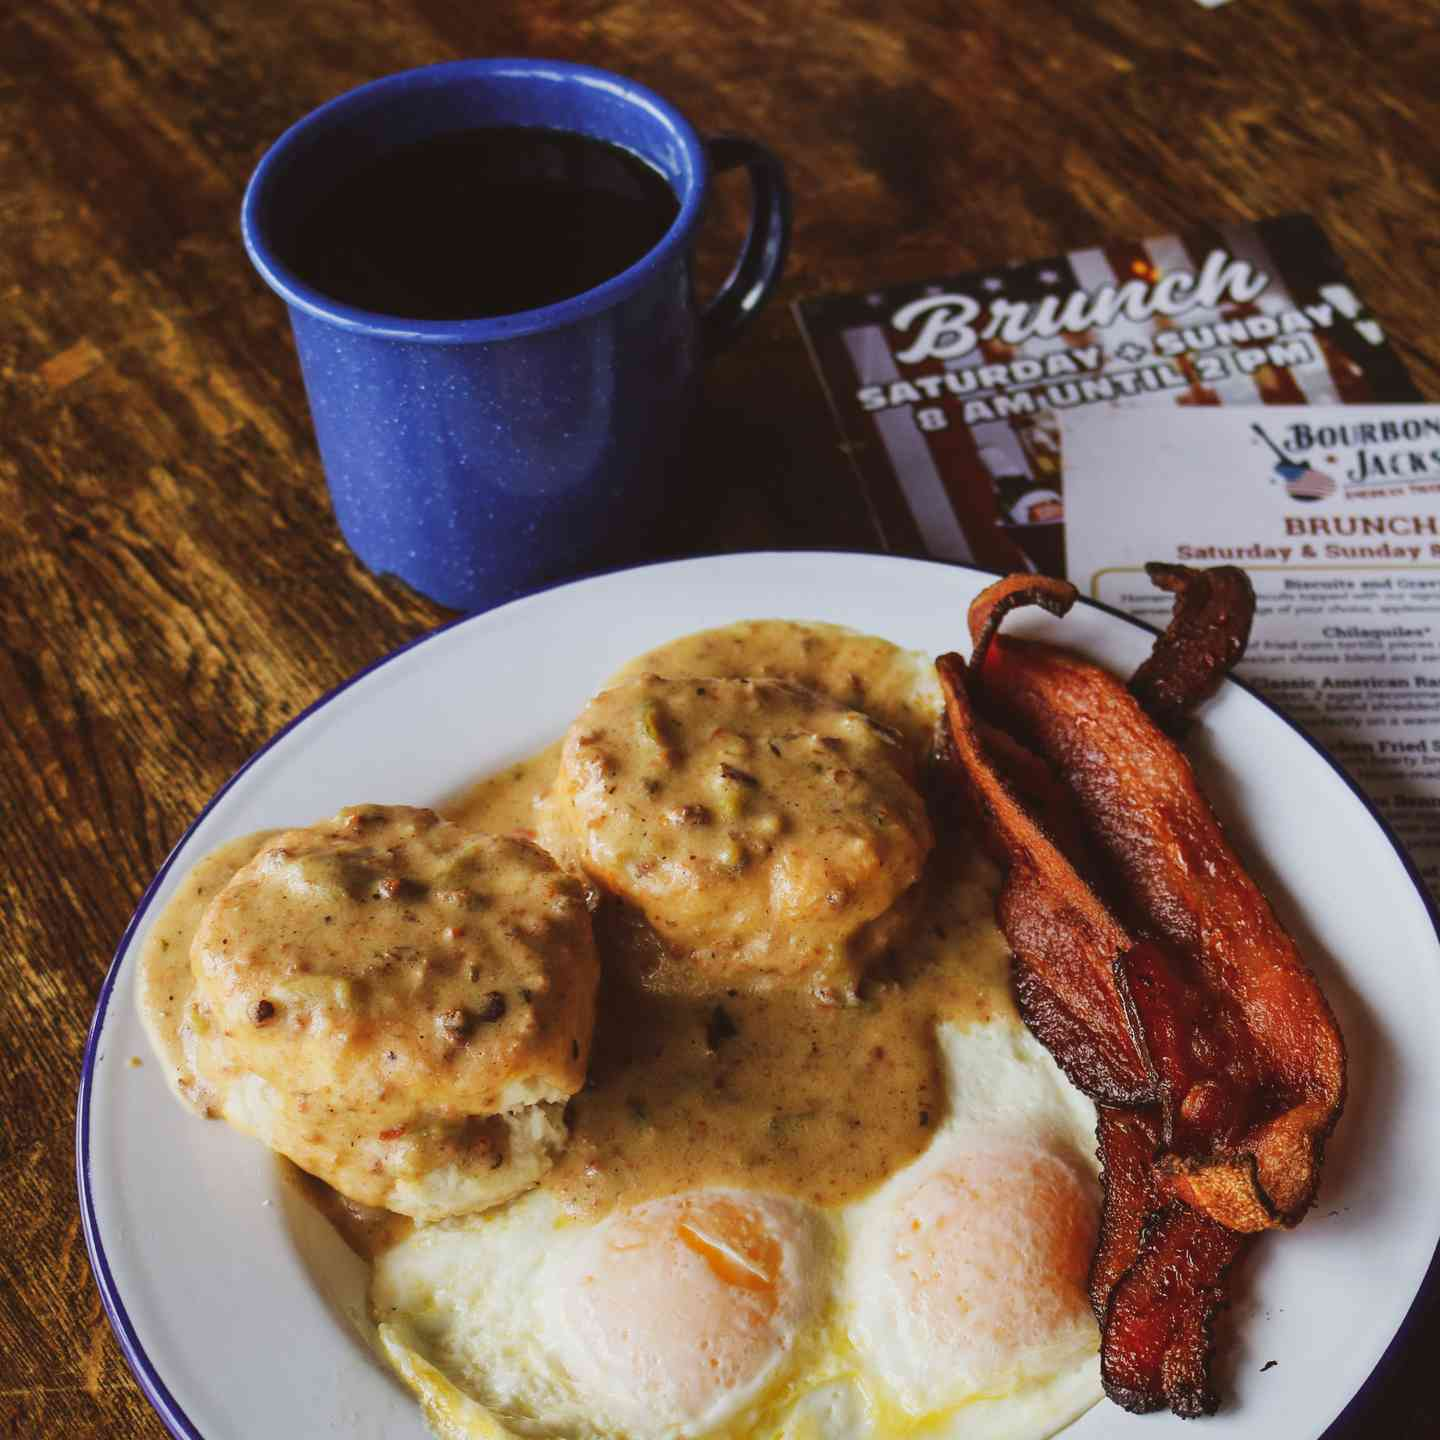 Biscuits and Gravy*